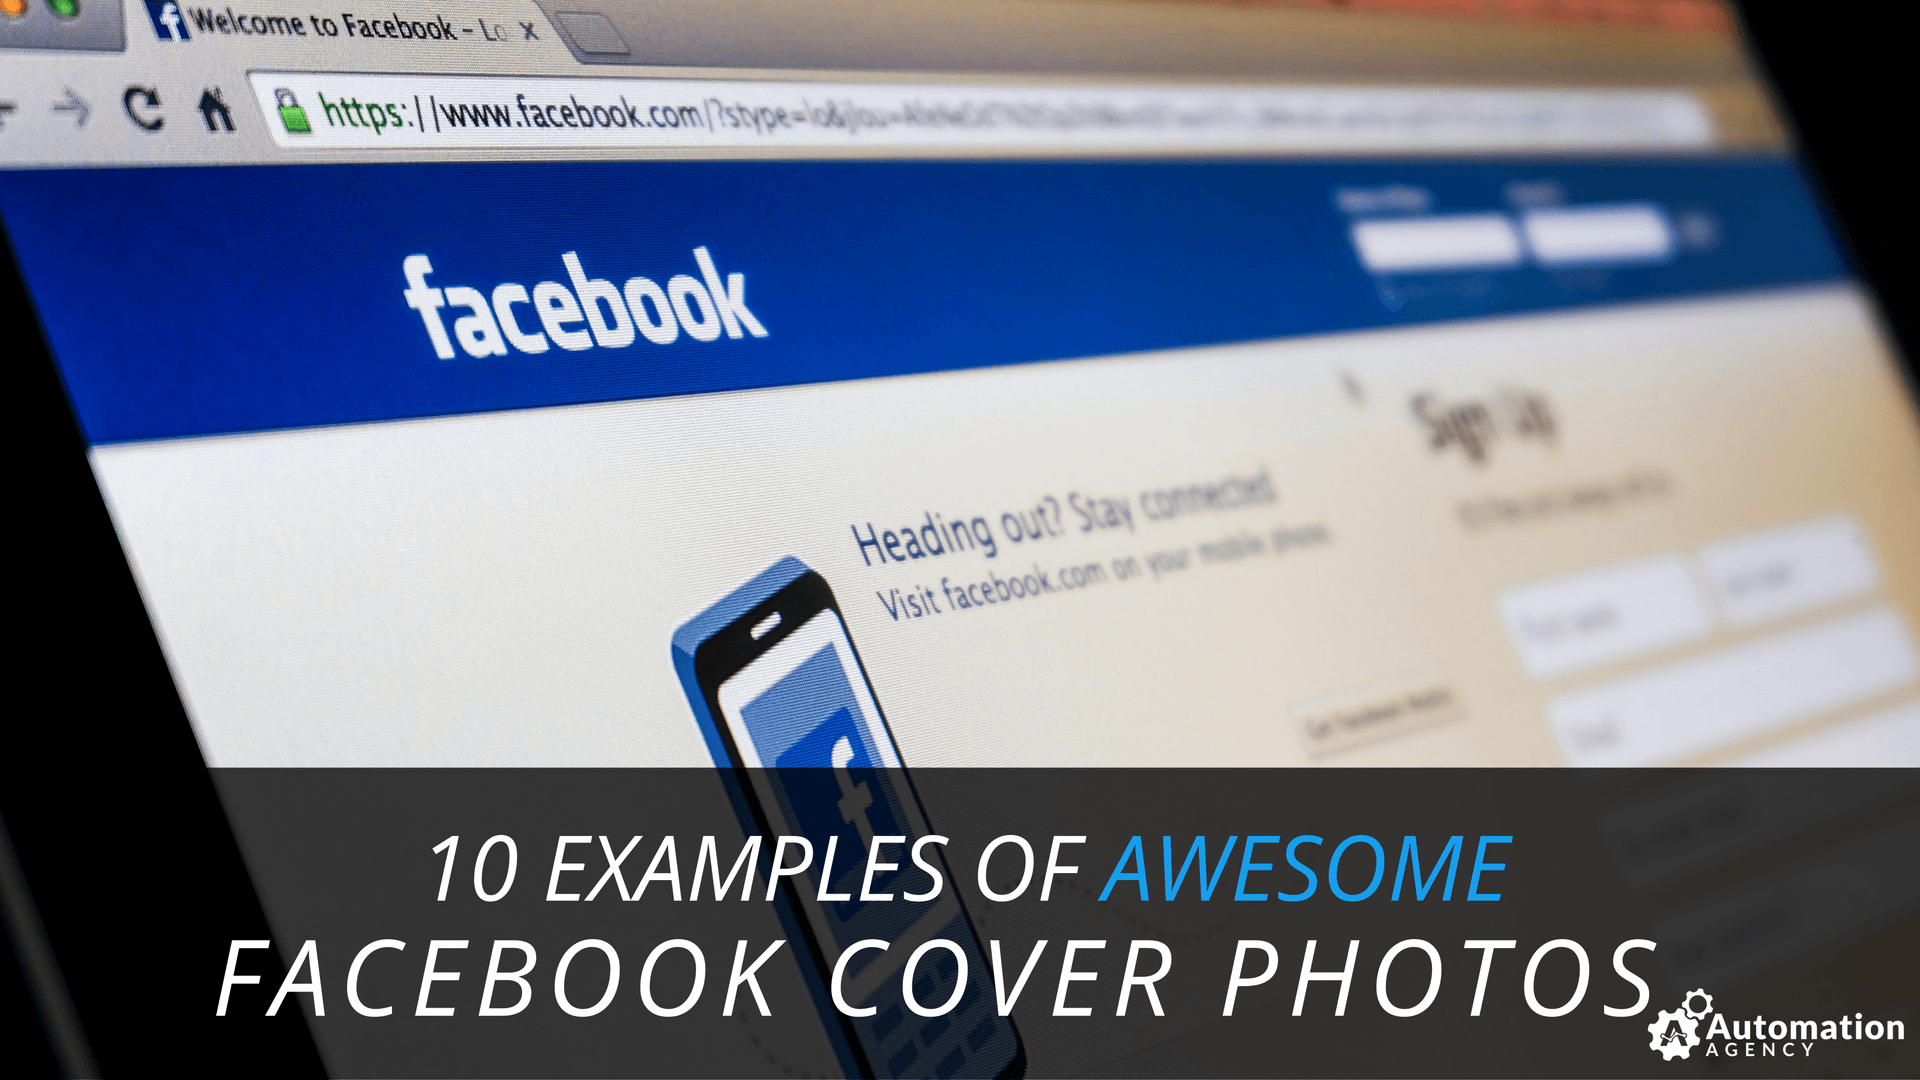 10 Examples Of Awesome Facebook Cover Photos